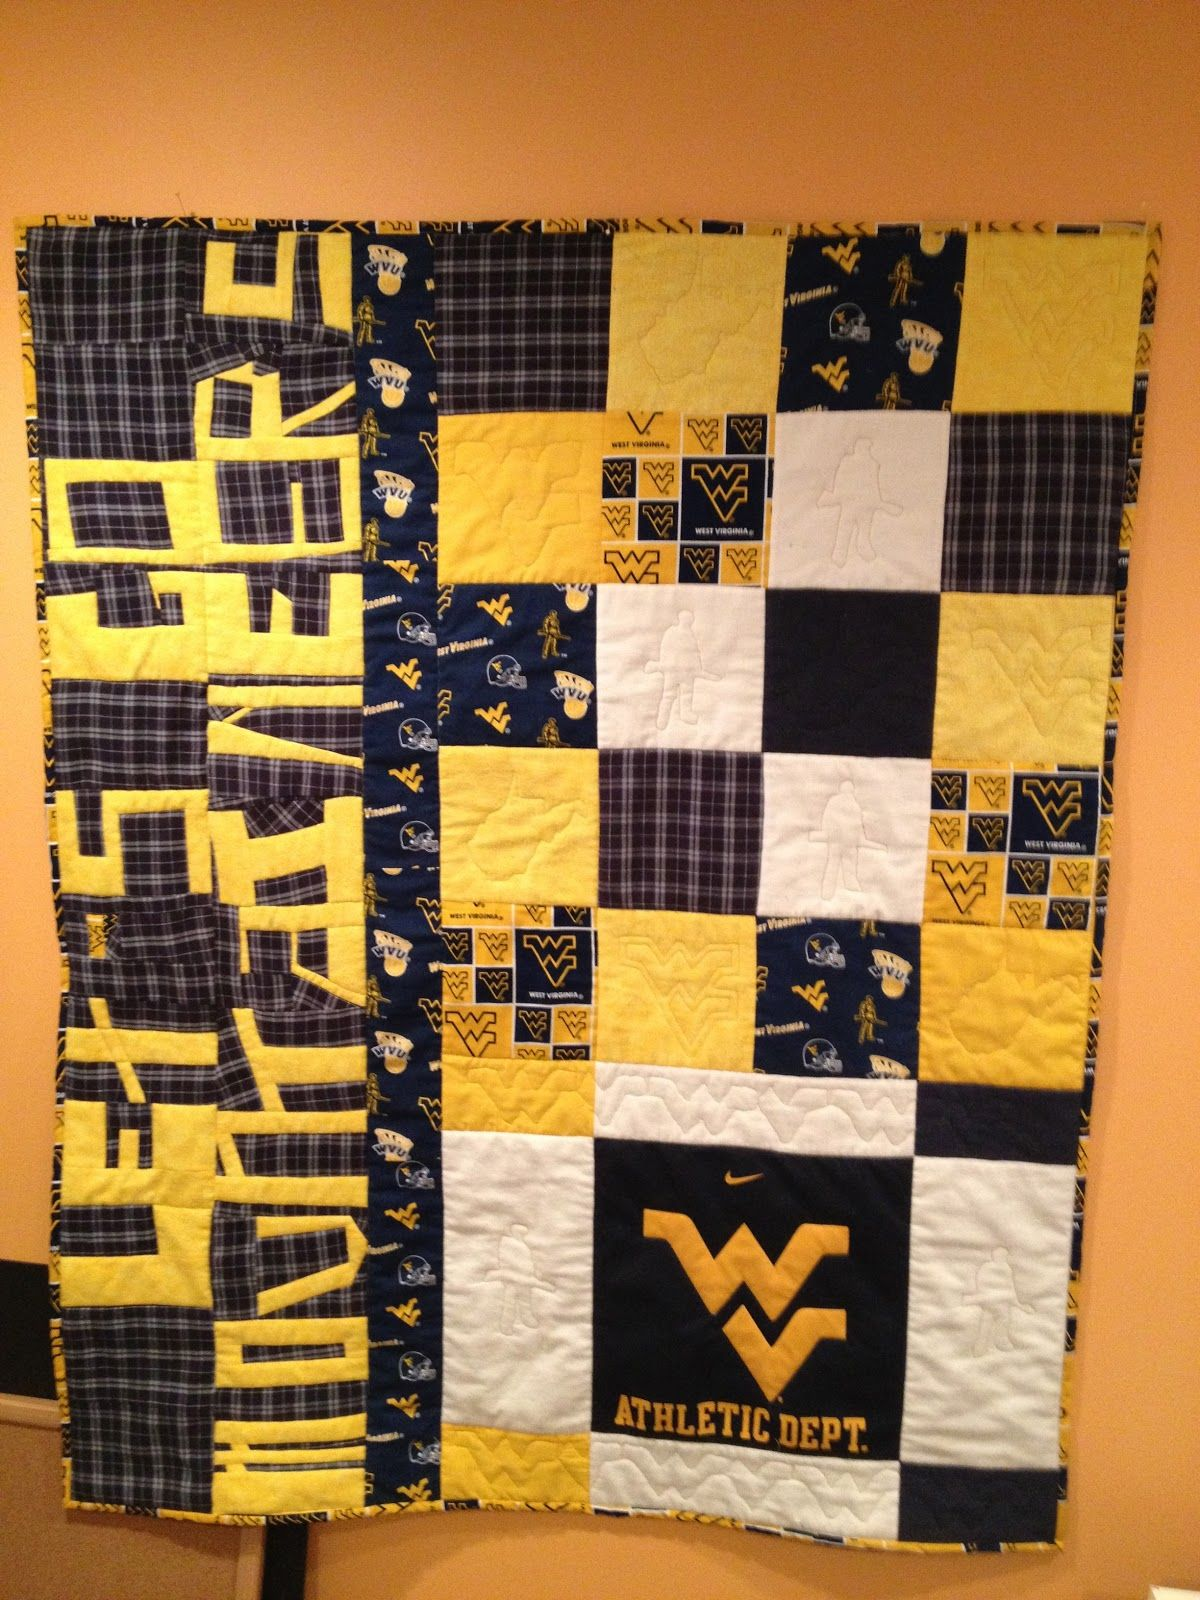 Ksspoildgrl S Craftier Ways Country Roads Take Me Home Wvu Mountaineers Quilts